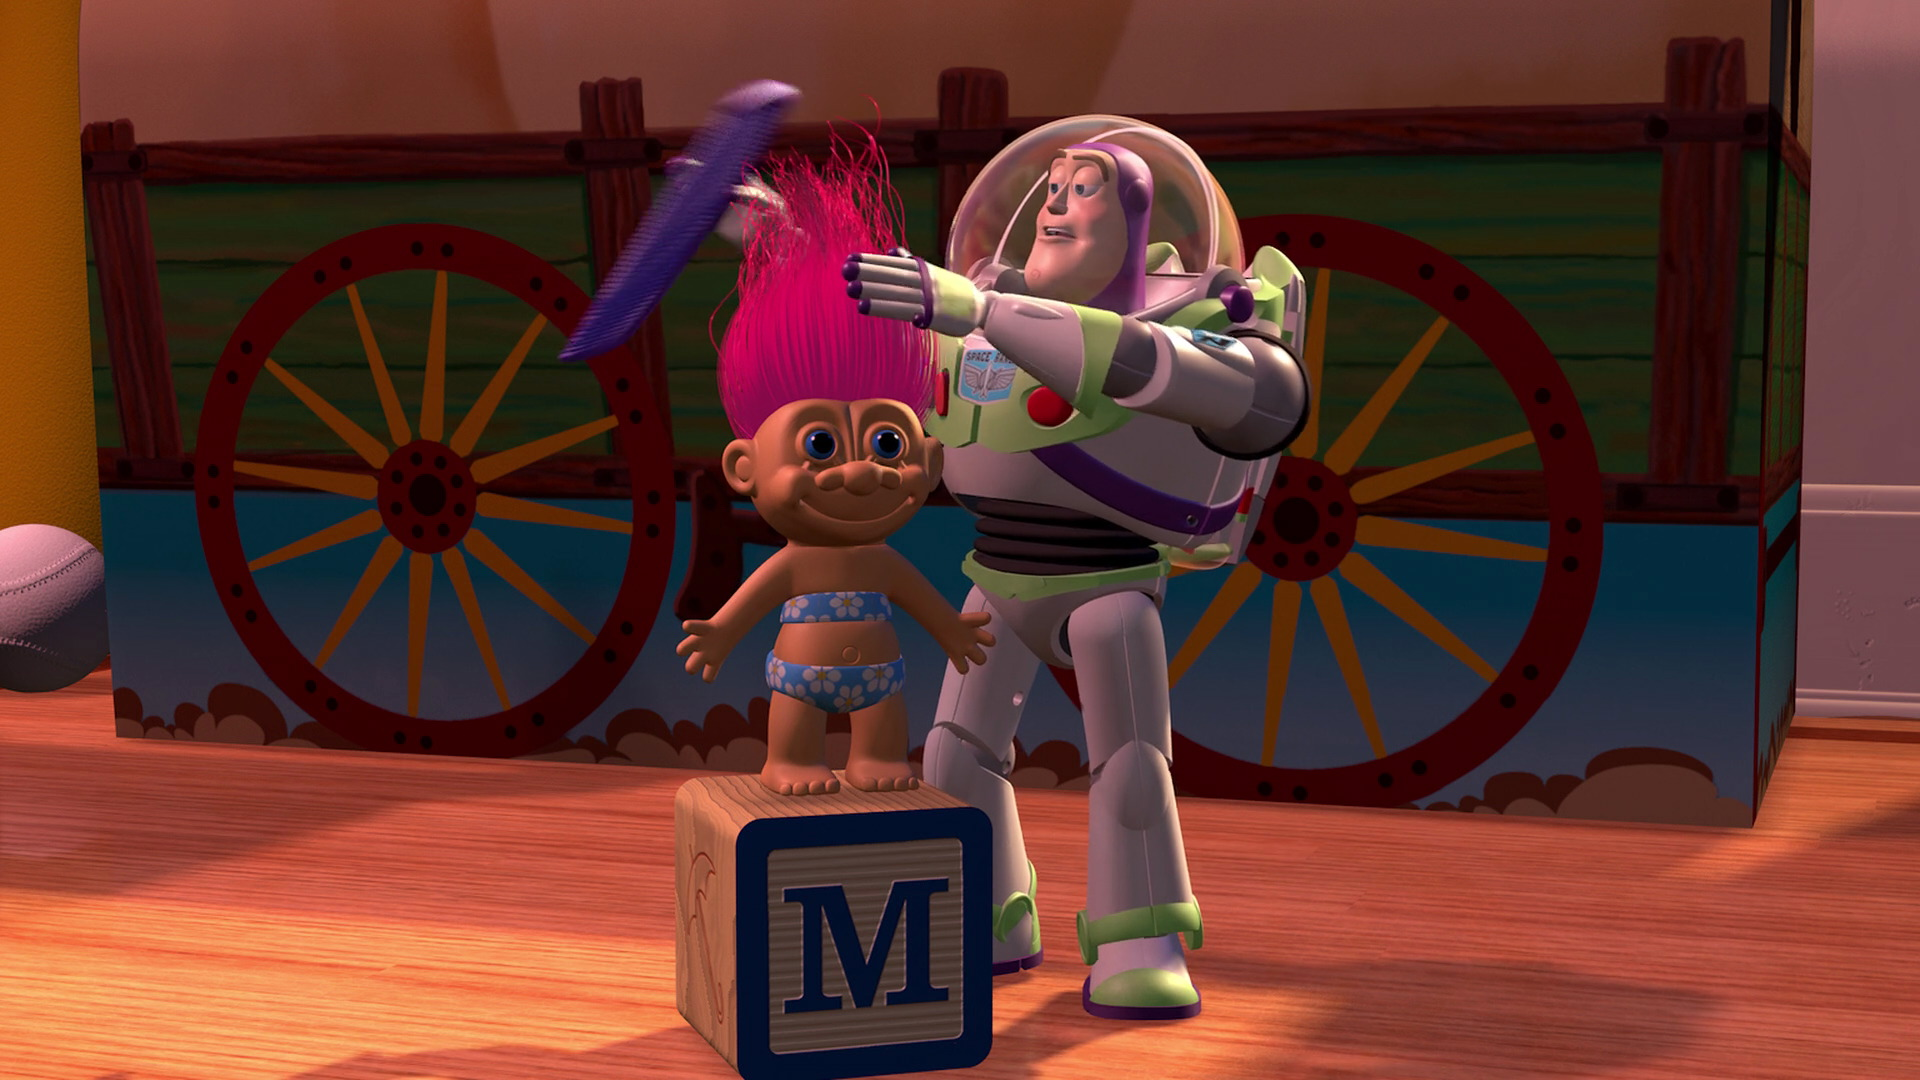 troll-personnage-toy-story-01